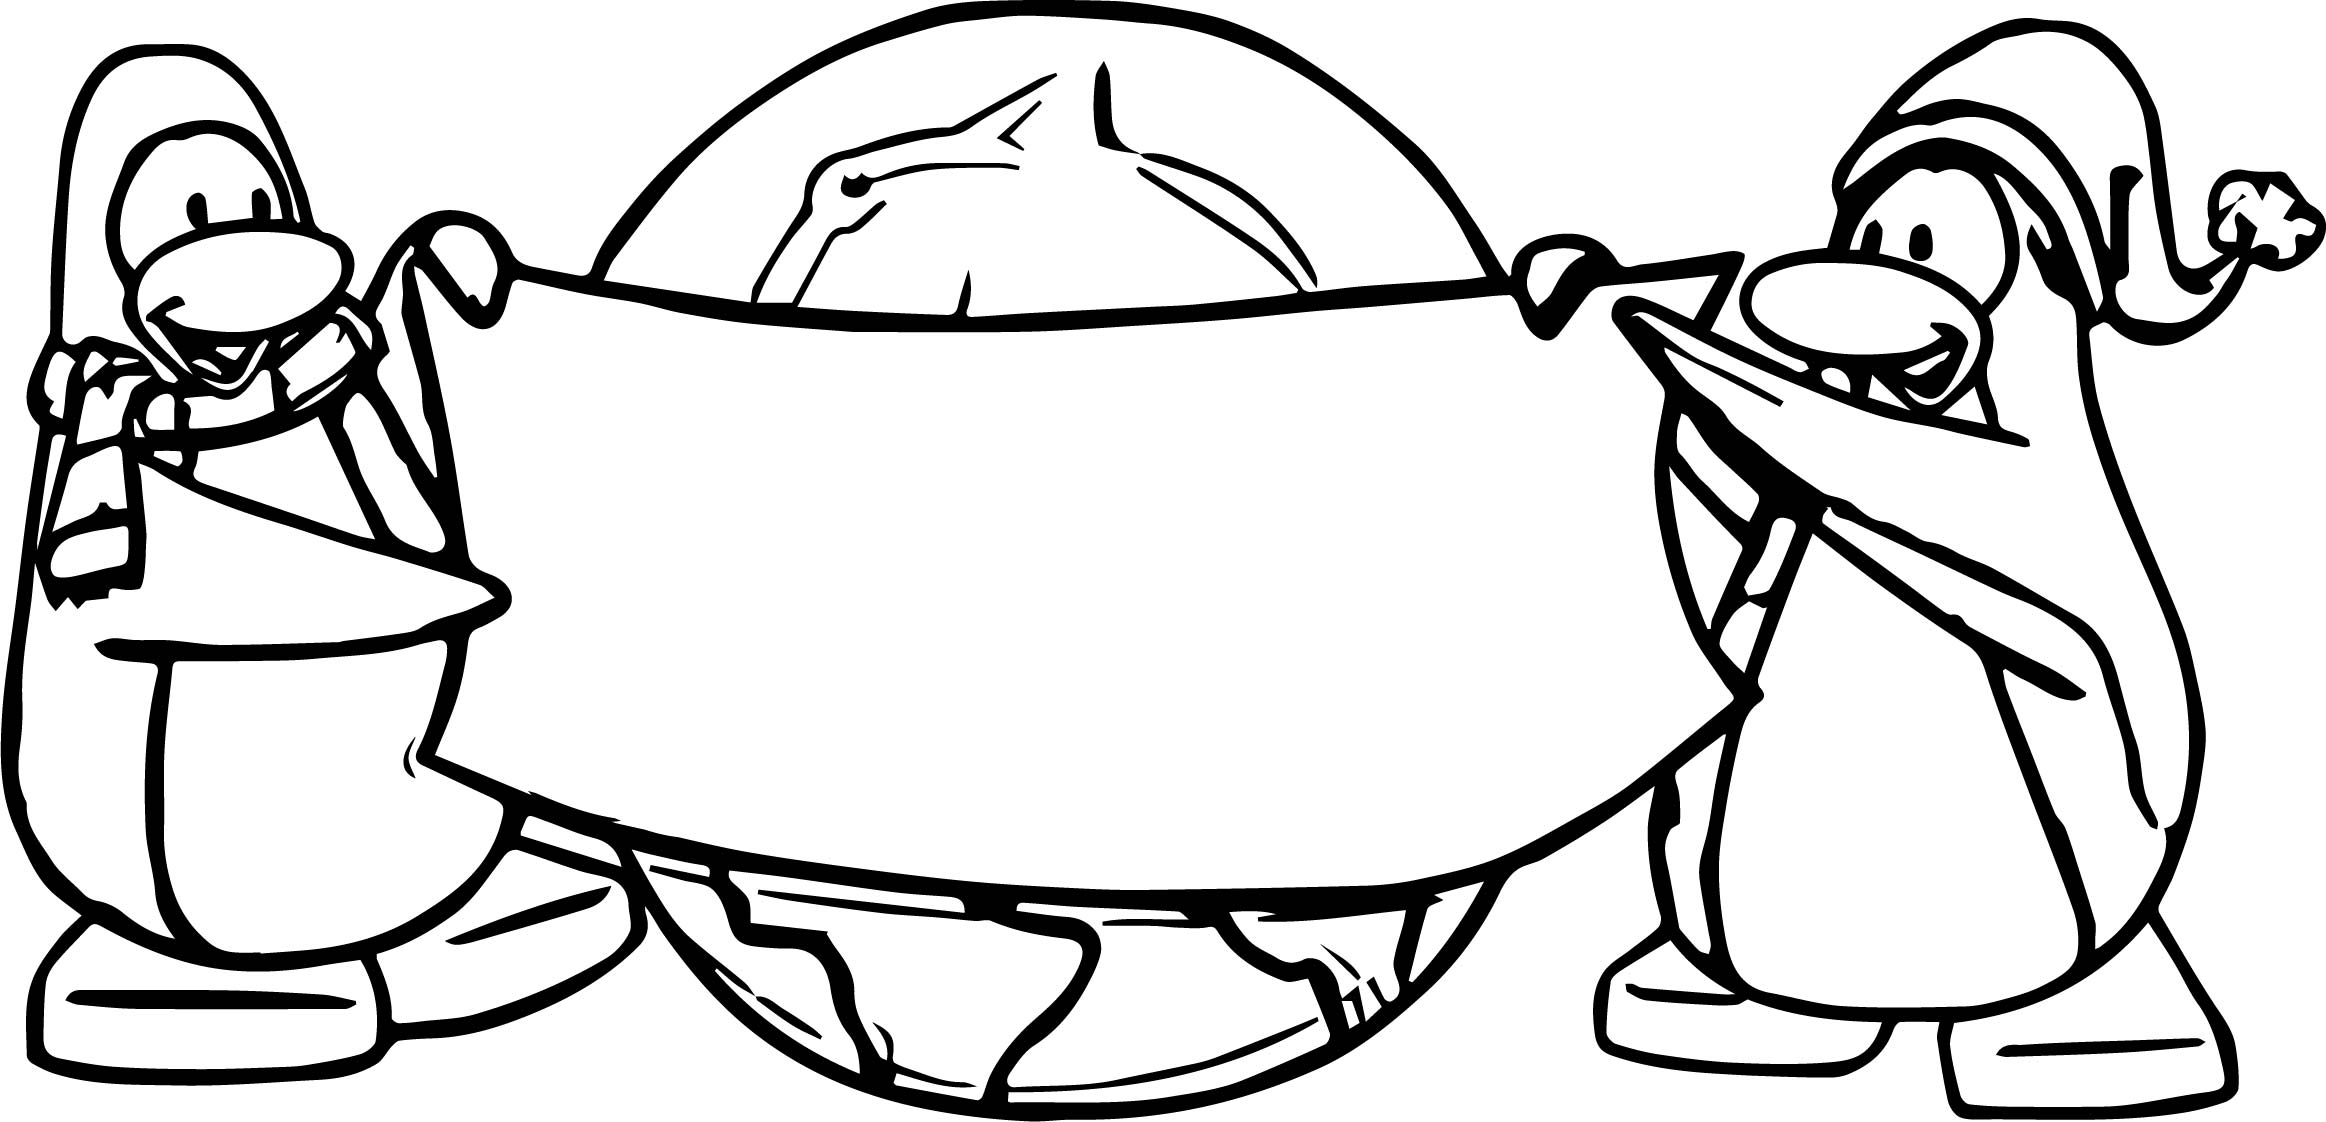 cadence club penguin coloring pages - photo#46